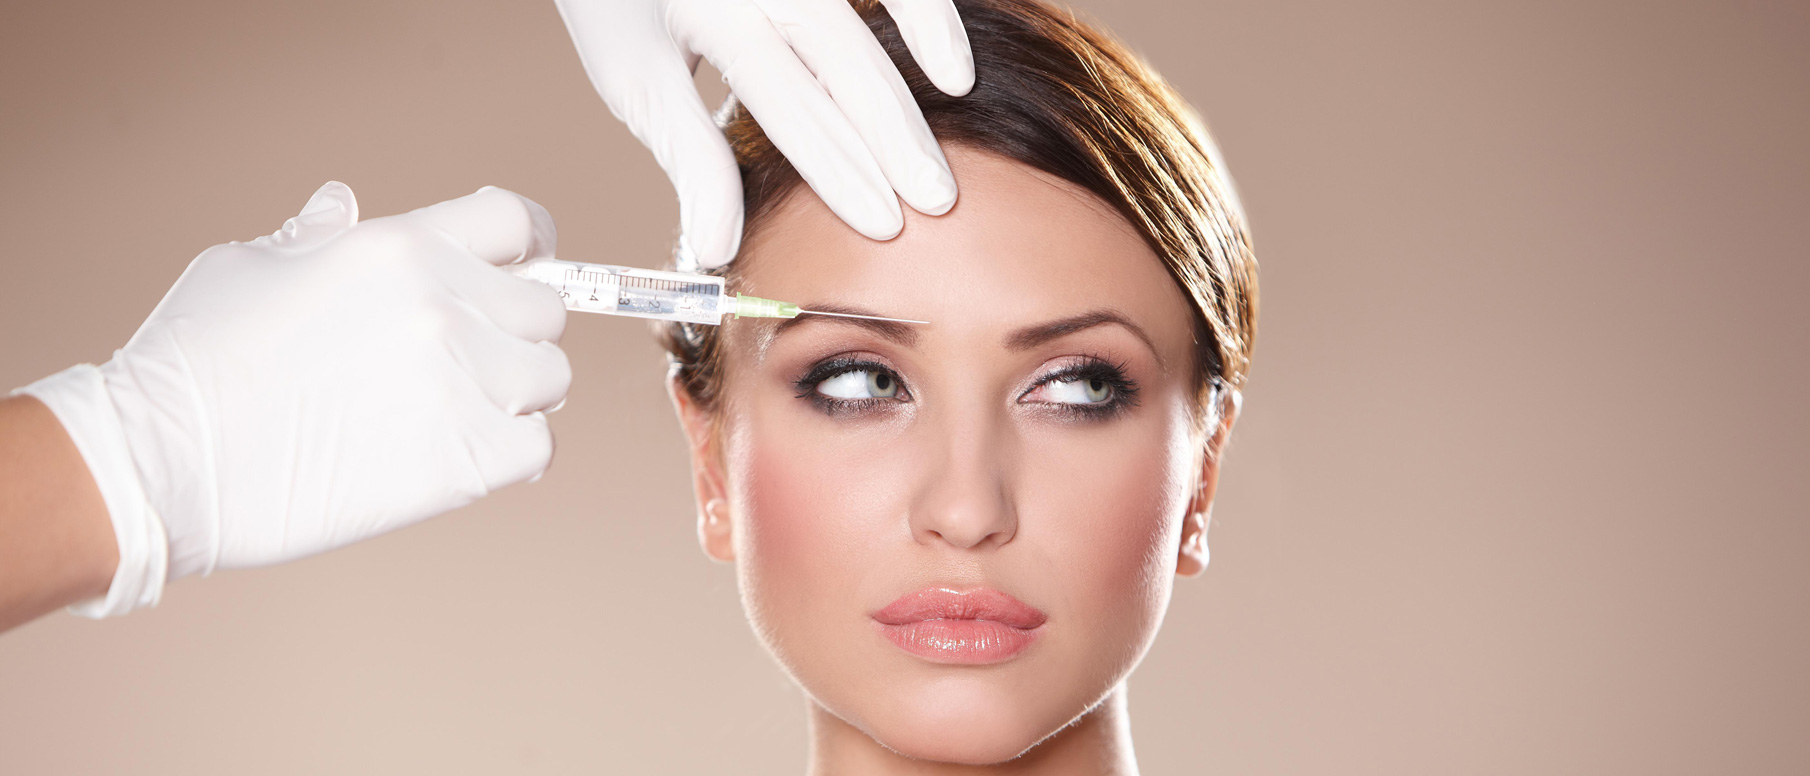 Botox & Fillers Archives - Mi Seoul